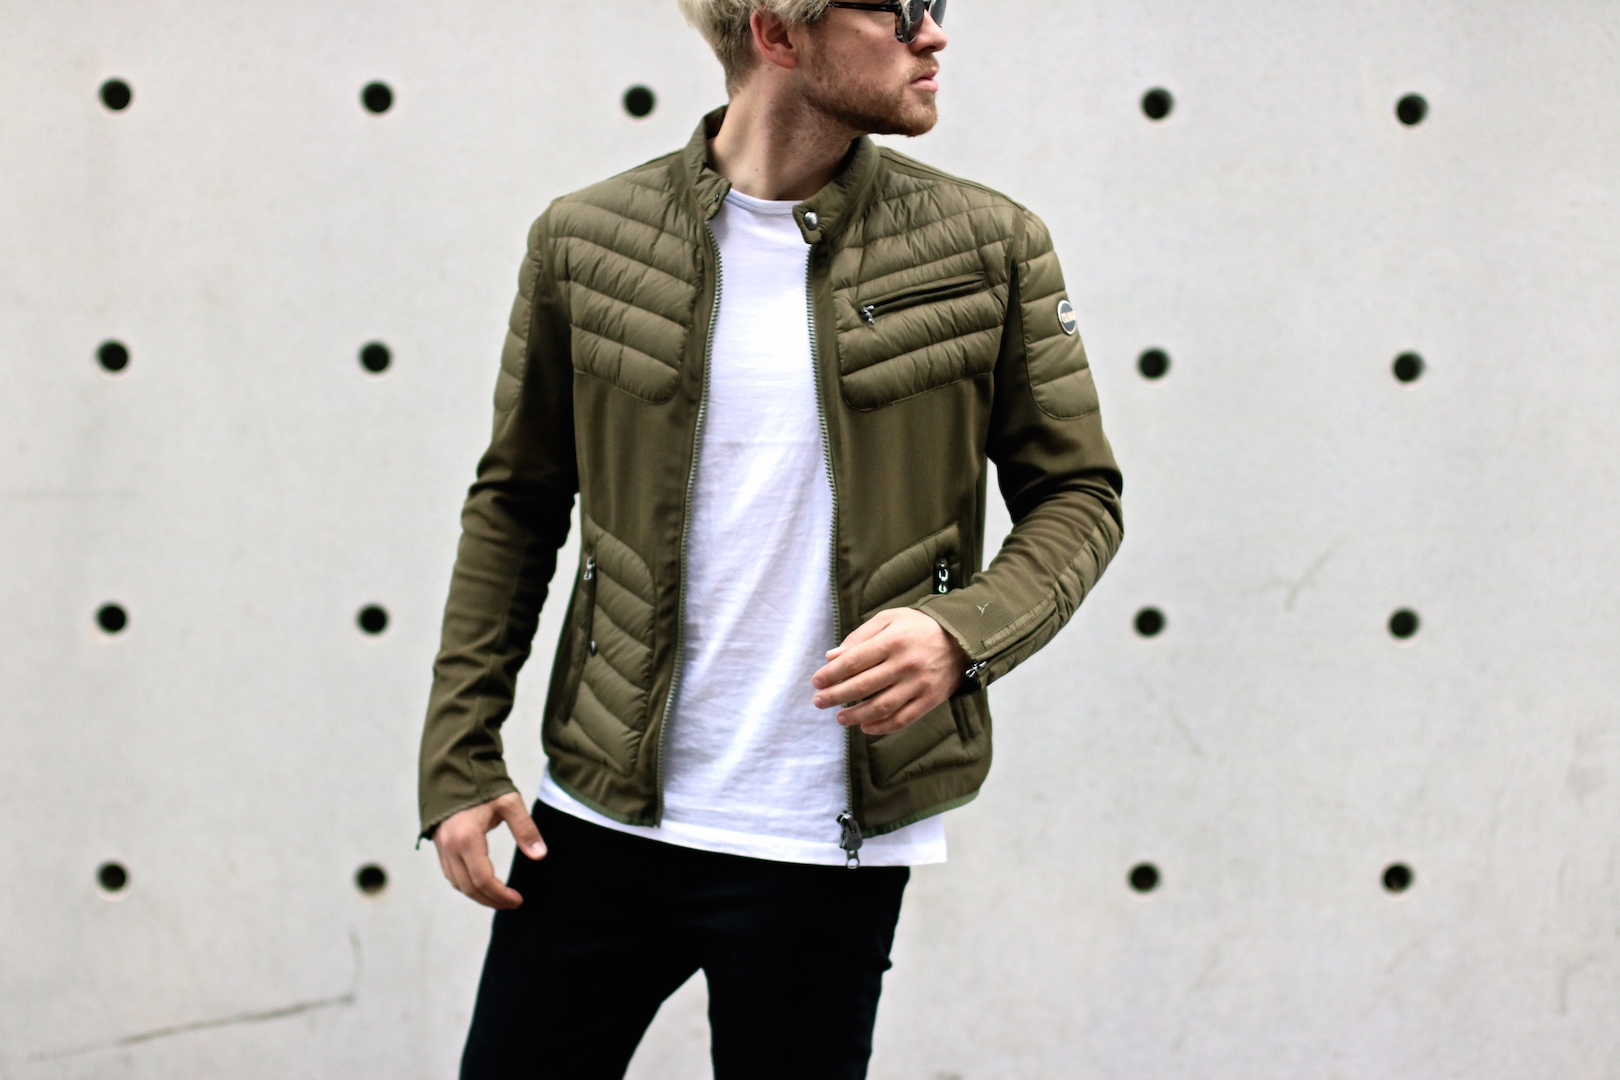 Outfit: Colmar Summer Down Jacket – Futuristic Materials meet Classy Design